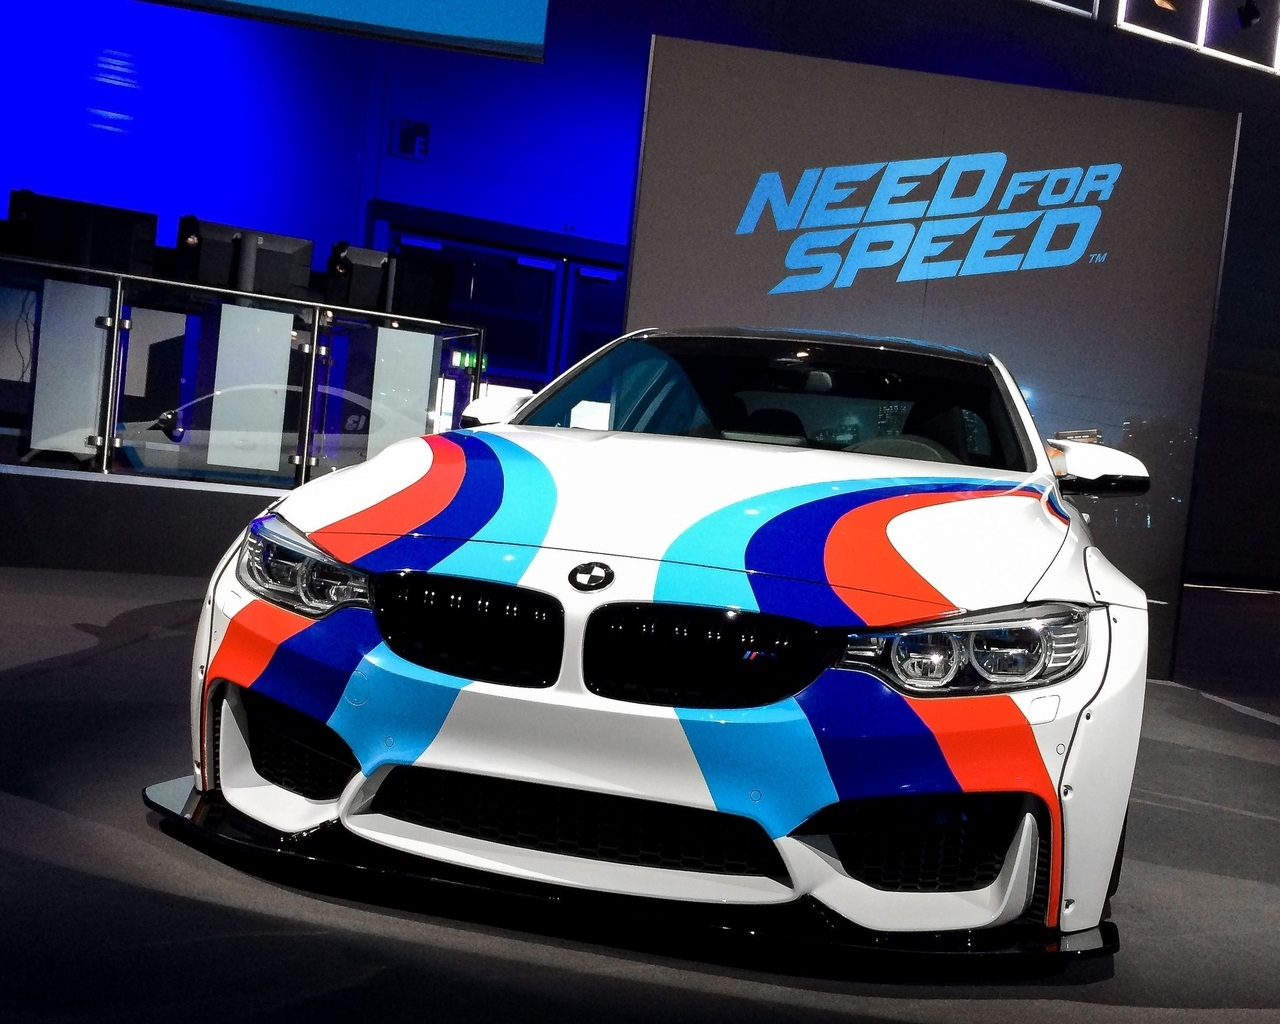 Need For Speed BMW for 1280 x 1024 resolution